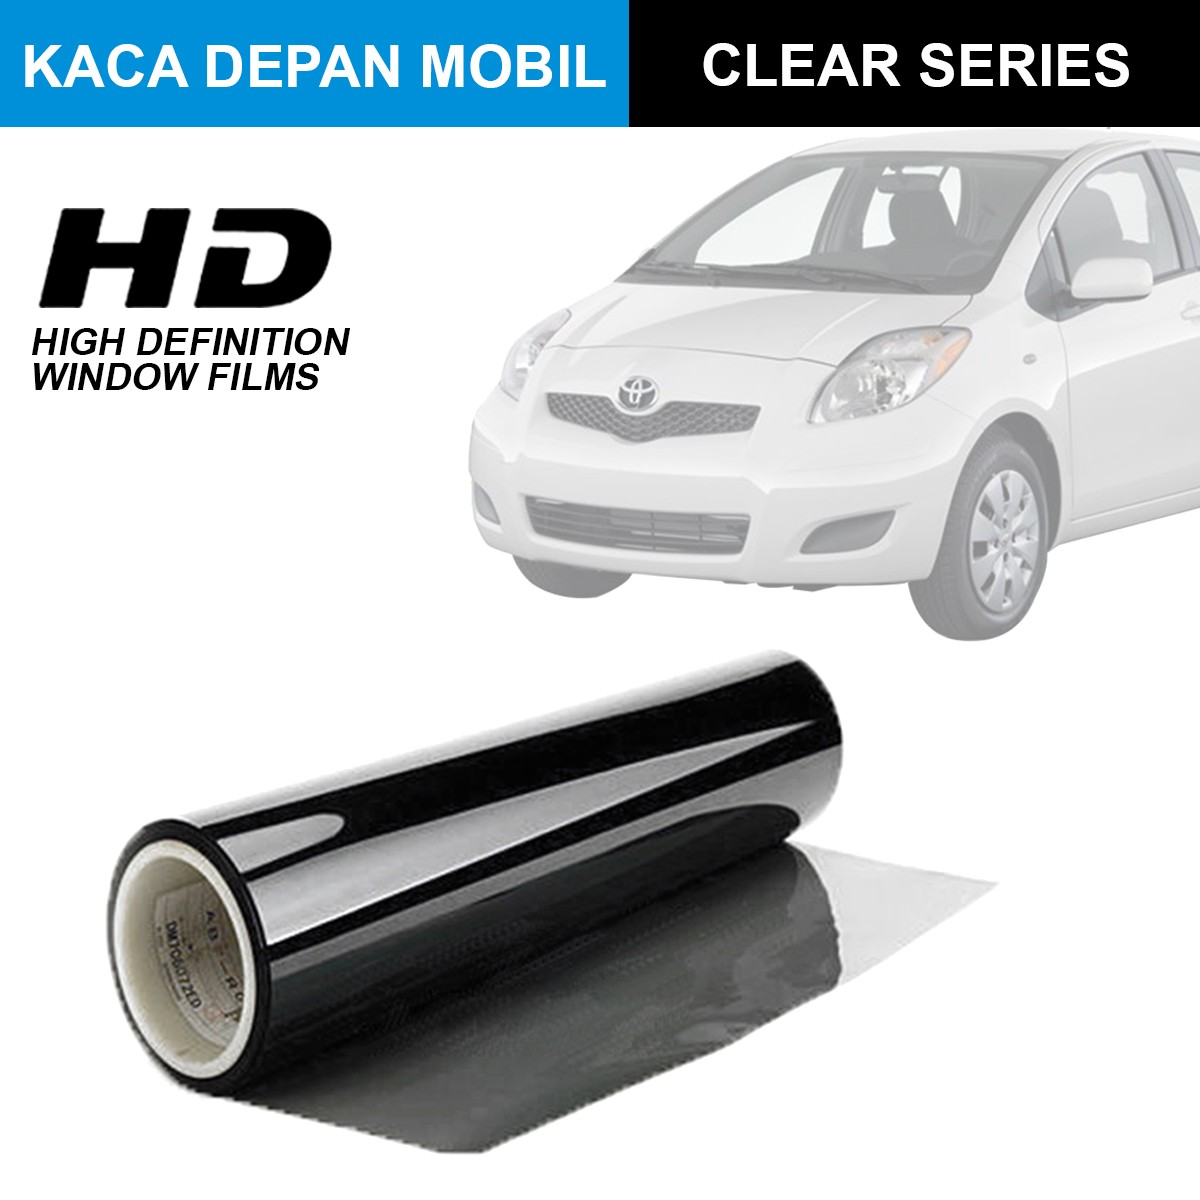 KACA FILM HIGH DEFINITION CLEAR SERIES - (SMALL CAR) KACA DEPAN